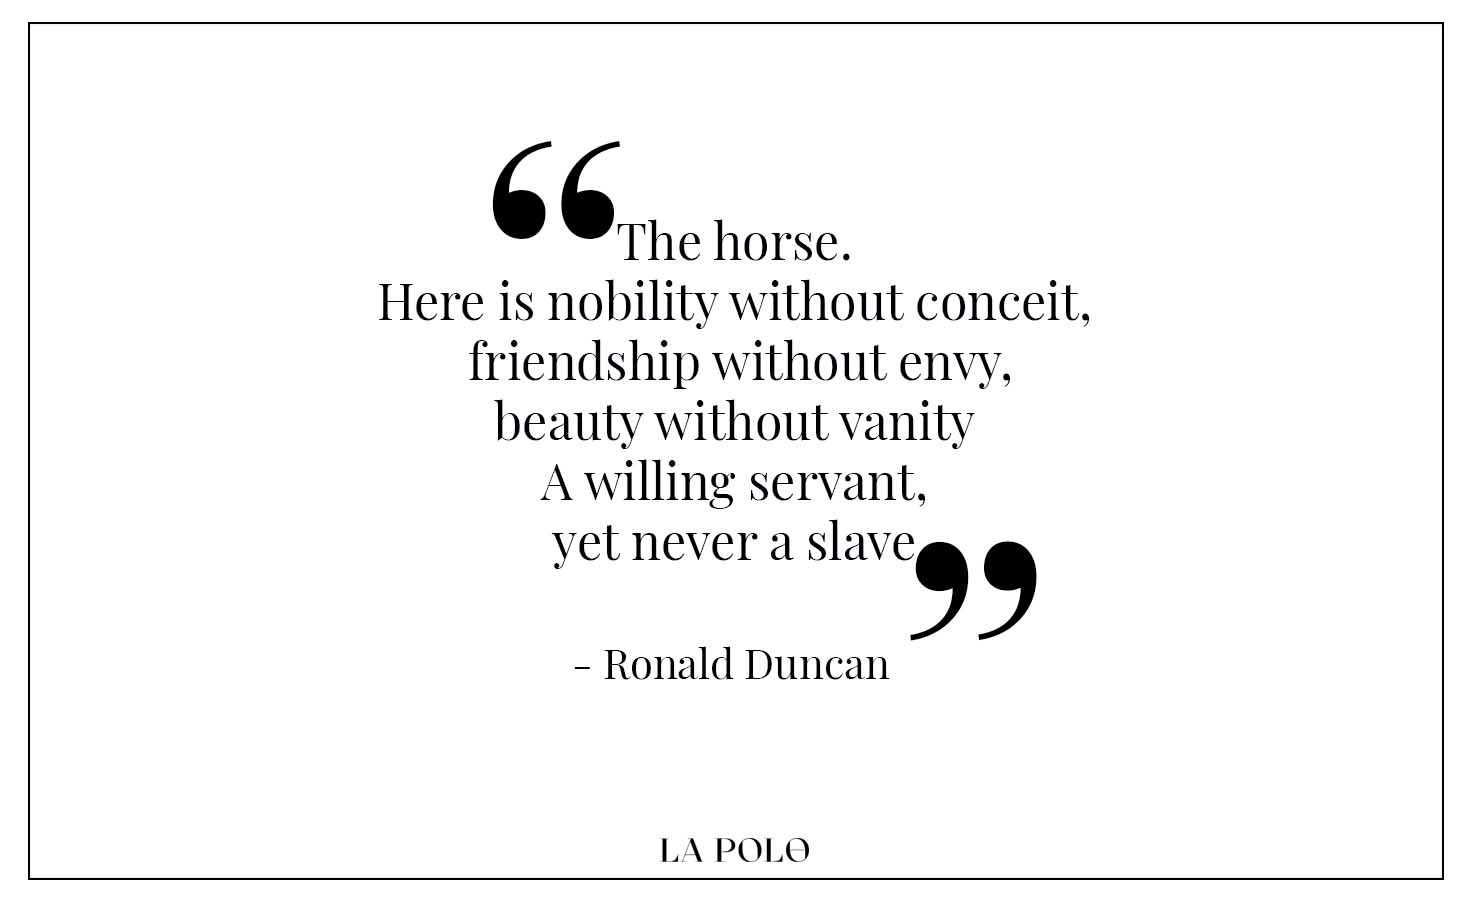 Ronald Duncan quotes